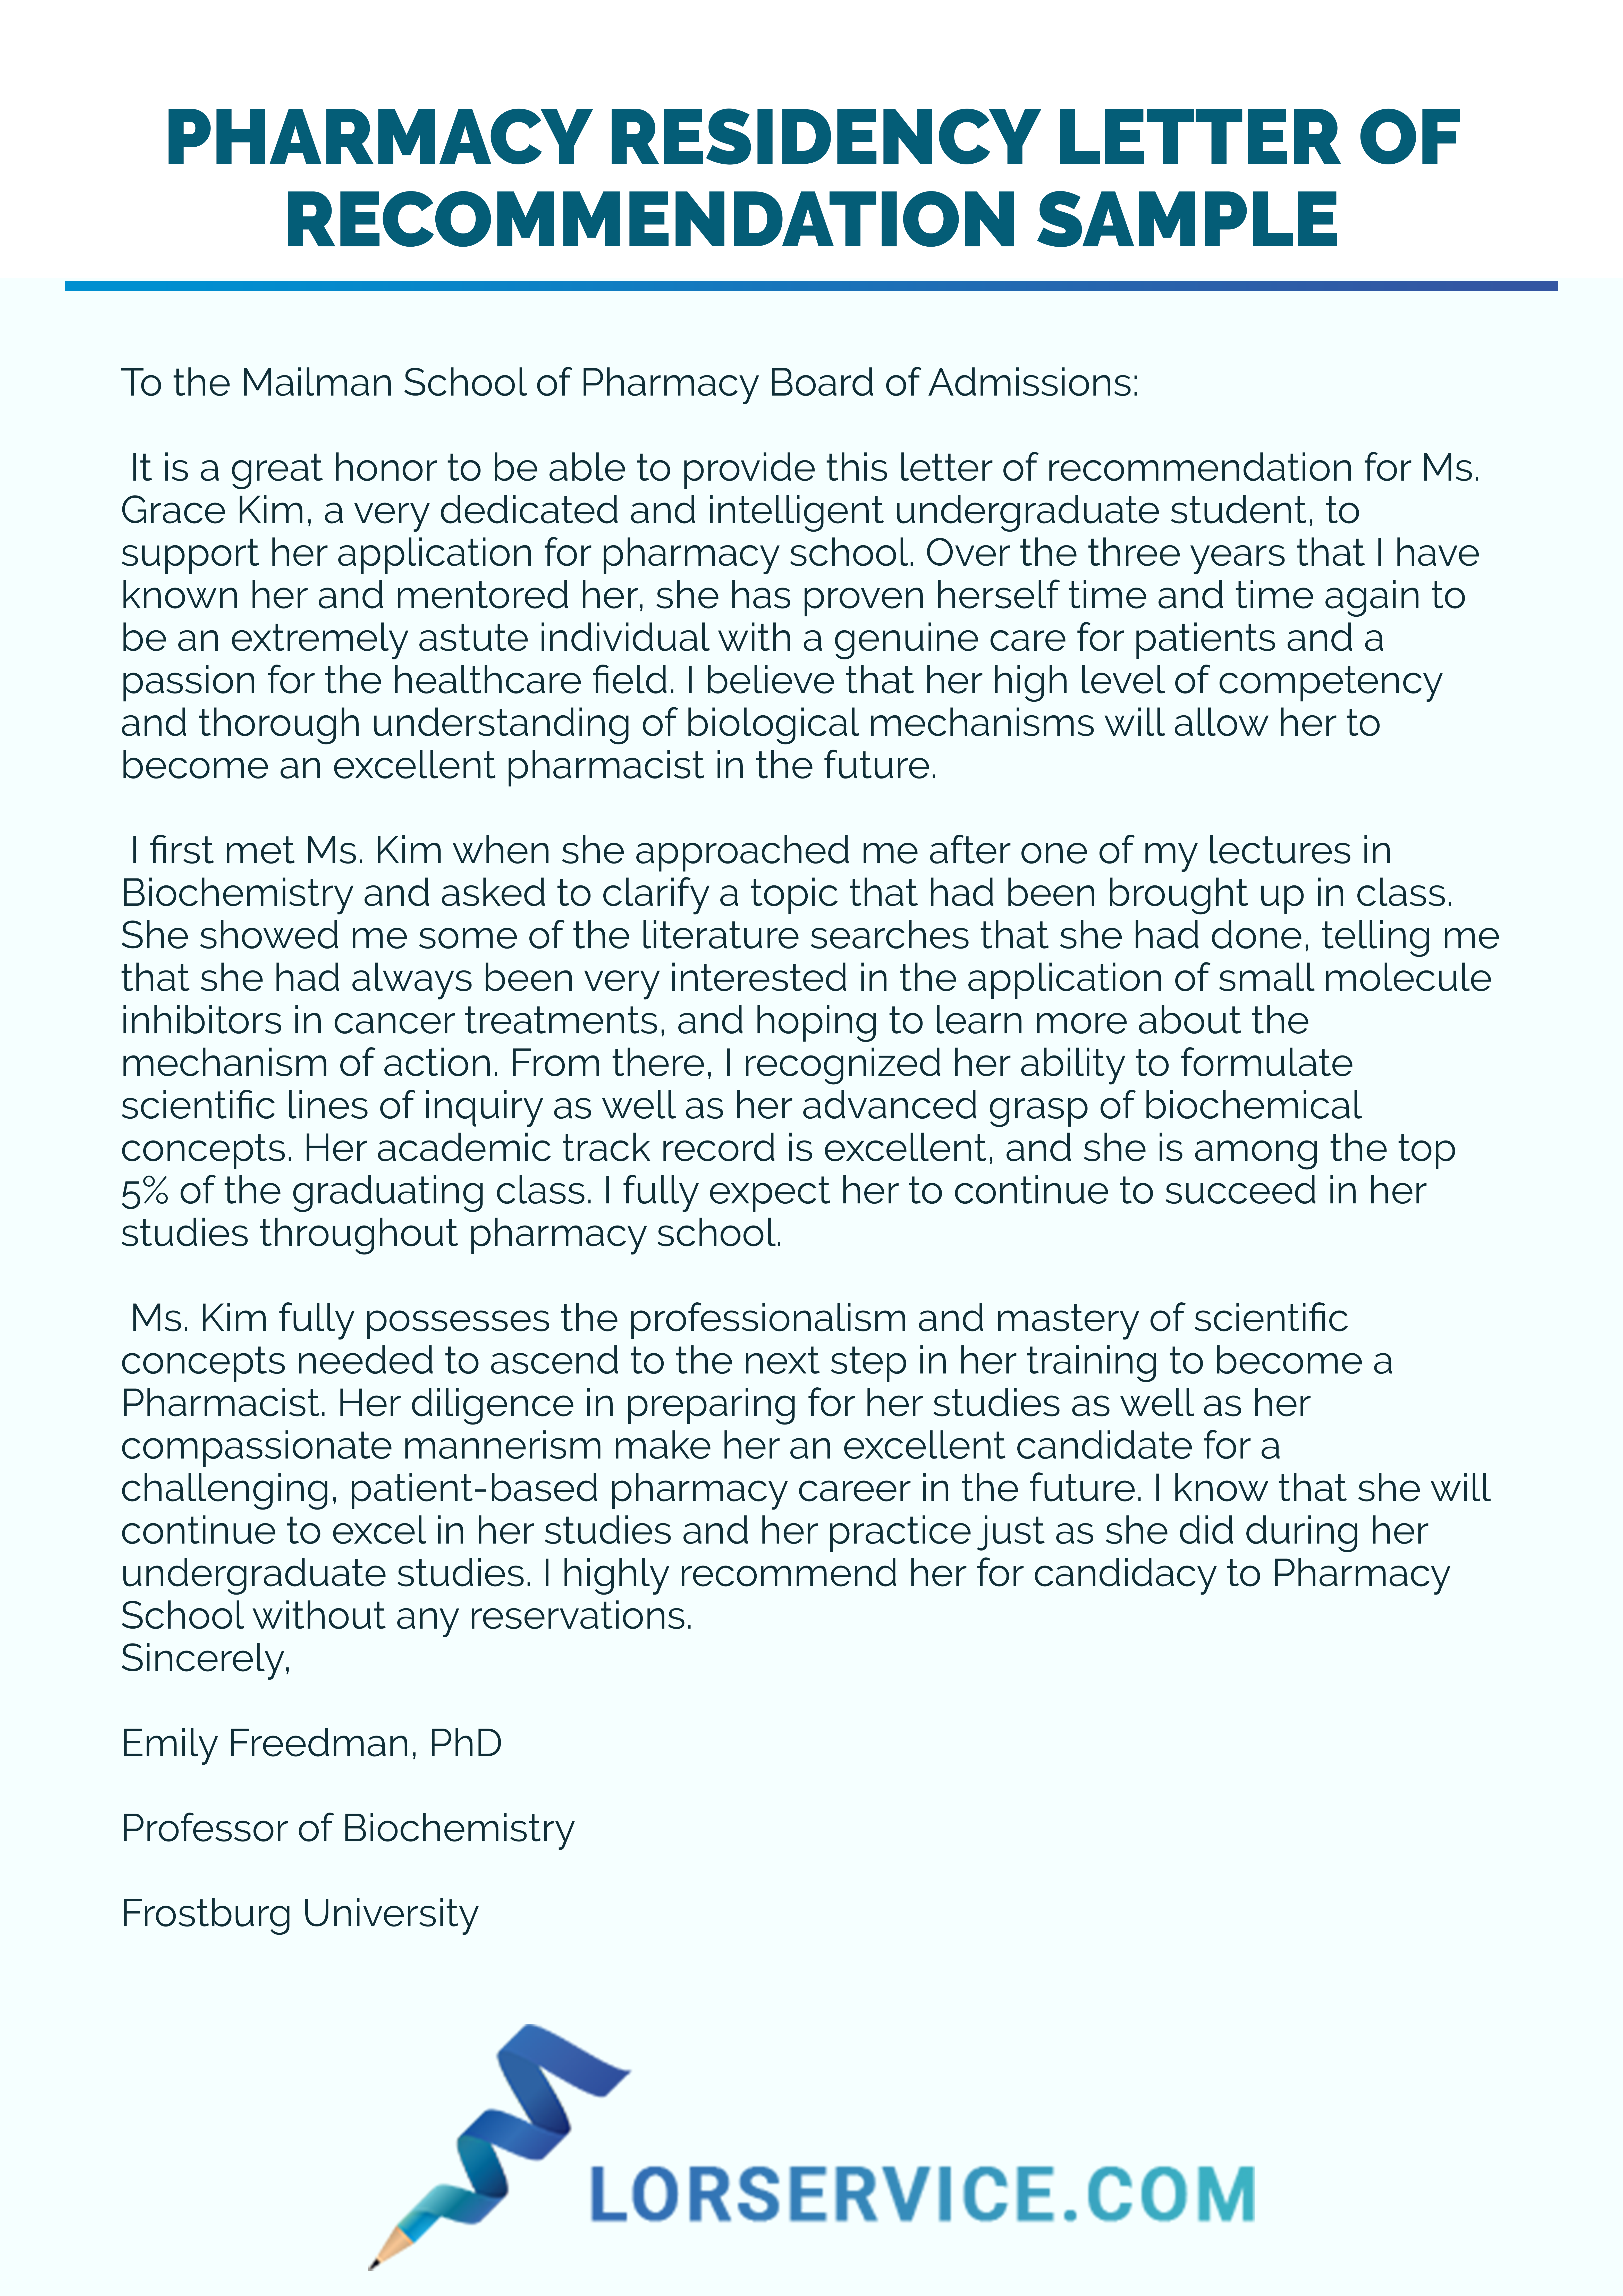 Pharmacy Residency Letter of Recommendation